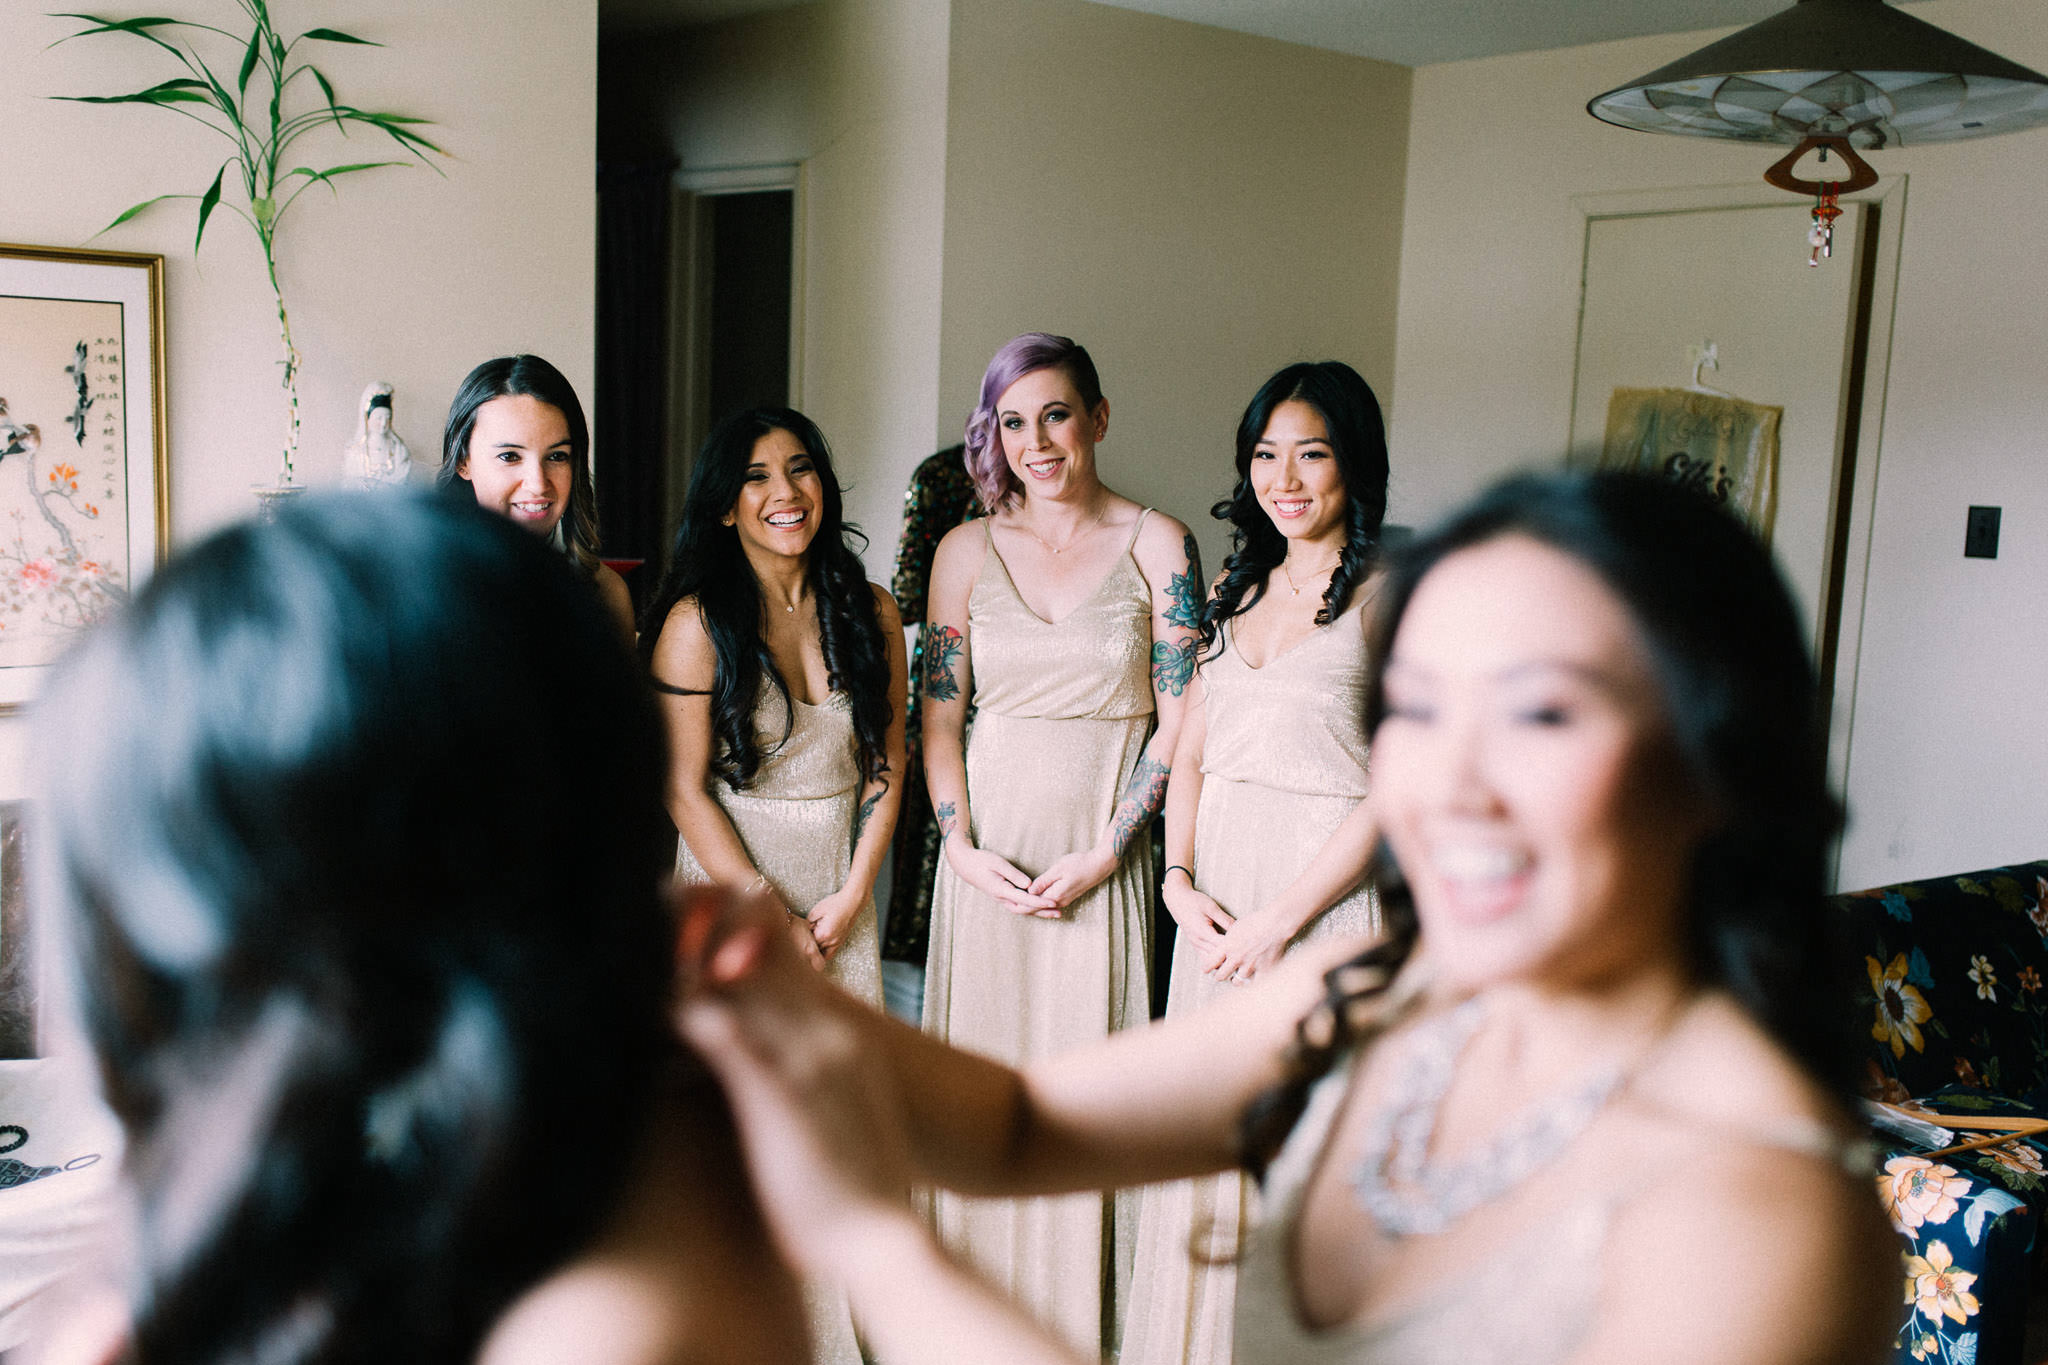 Vaughn wedding at Chateau Le Jardin by Max Wong Photo (16)